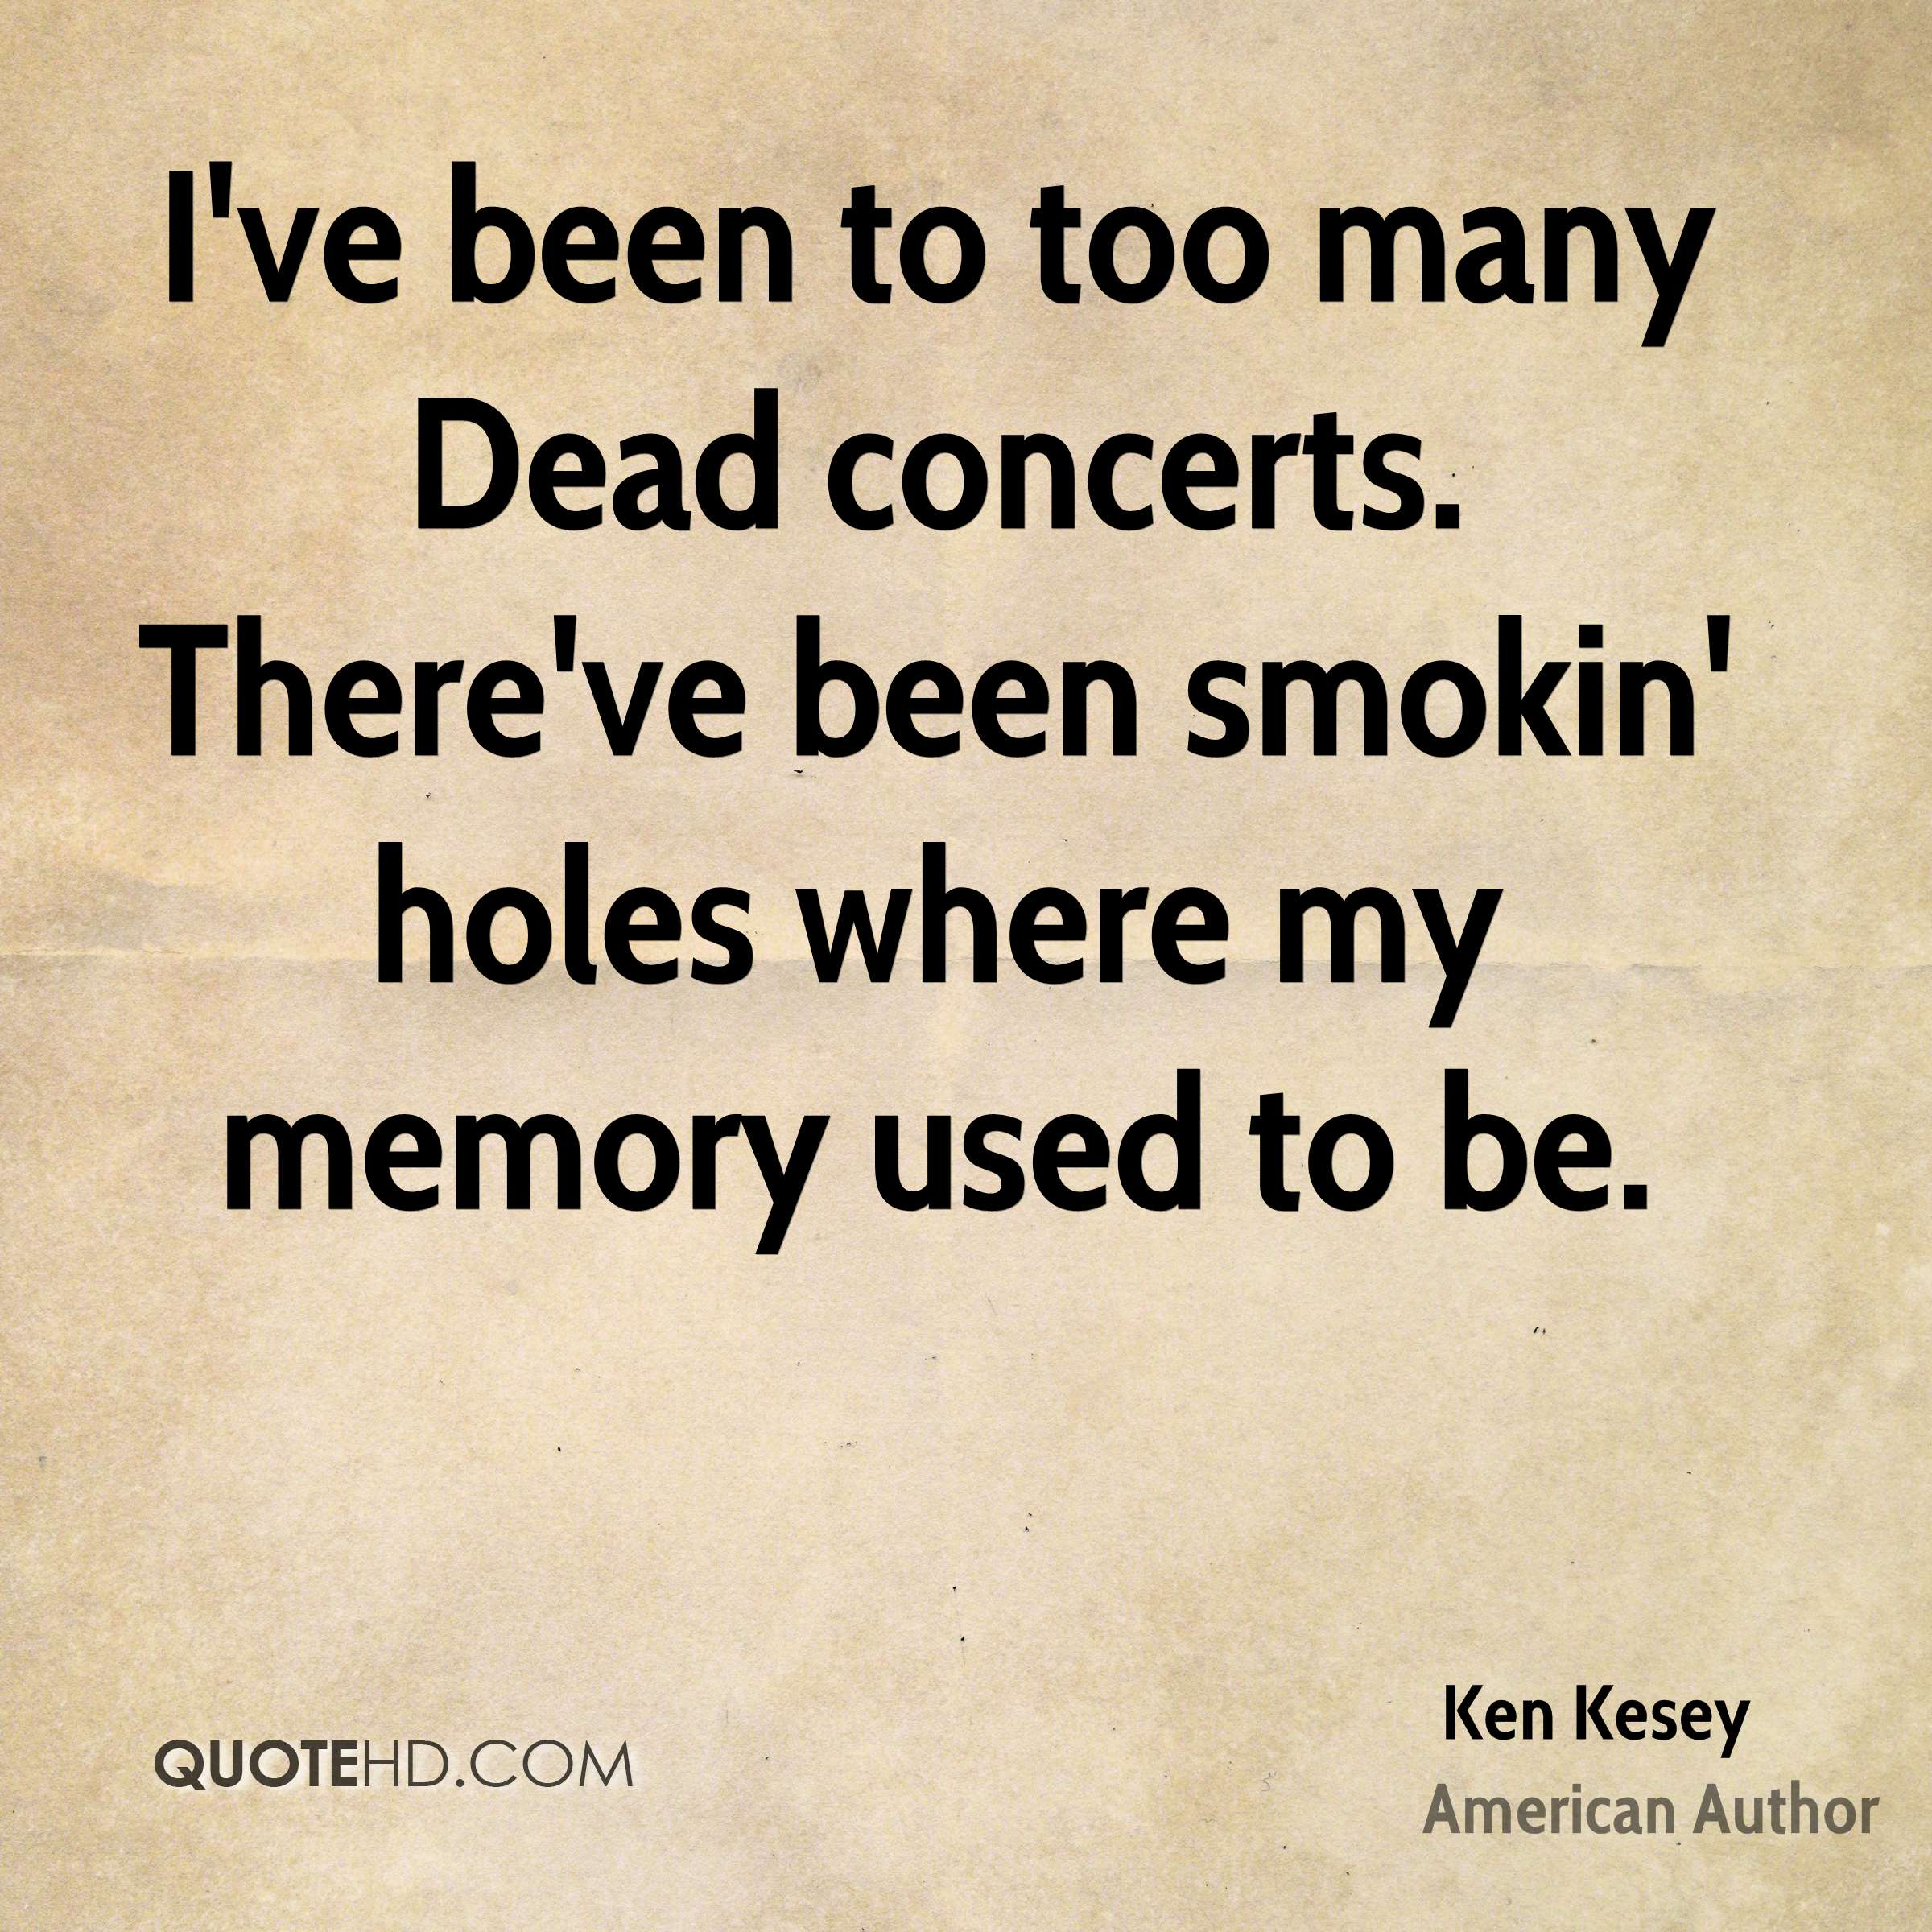 I've been to too many Dead concerts. There've been smokin' holes where my memory used to be.